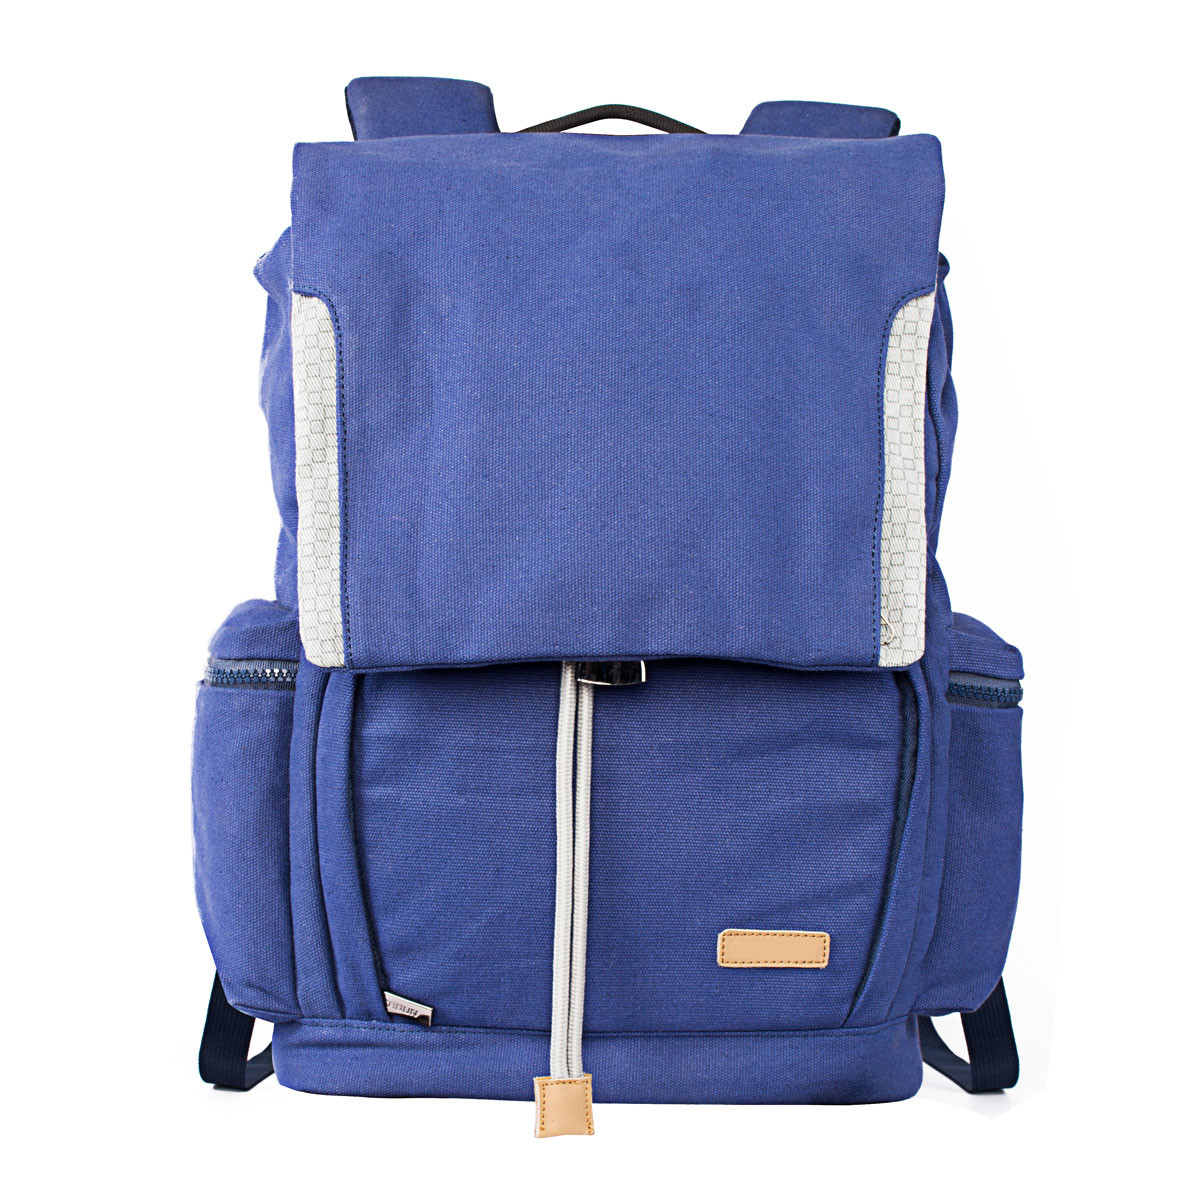 MENGS® M6 Blue Camera Backpack With Canvas For Canon Nikon Sony DSLR Camera